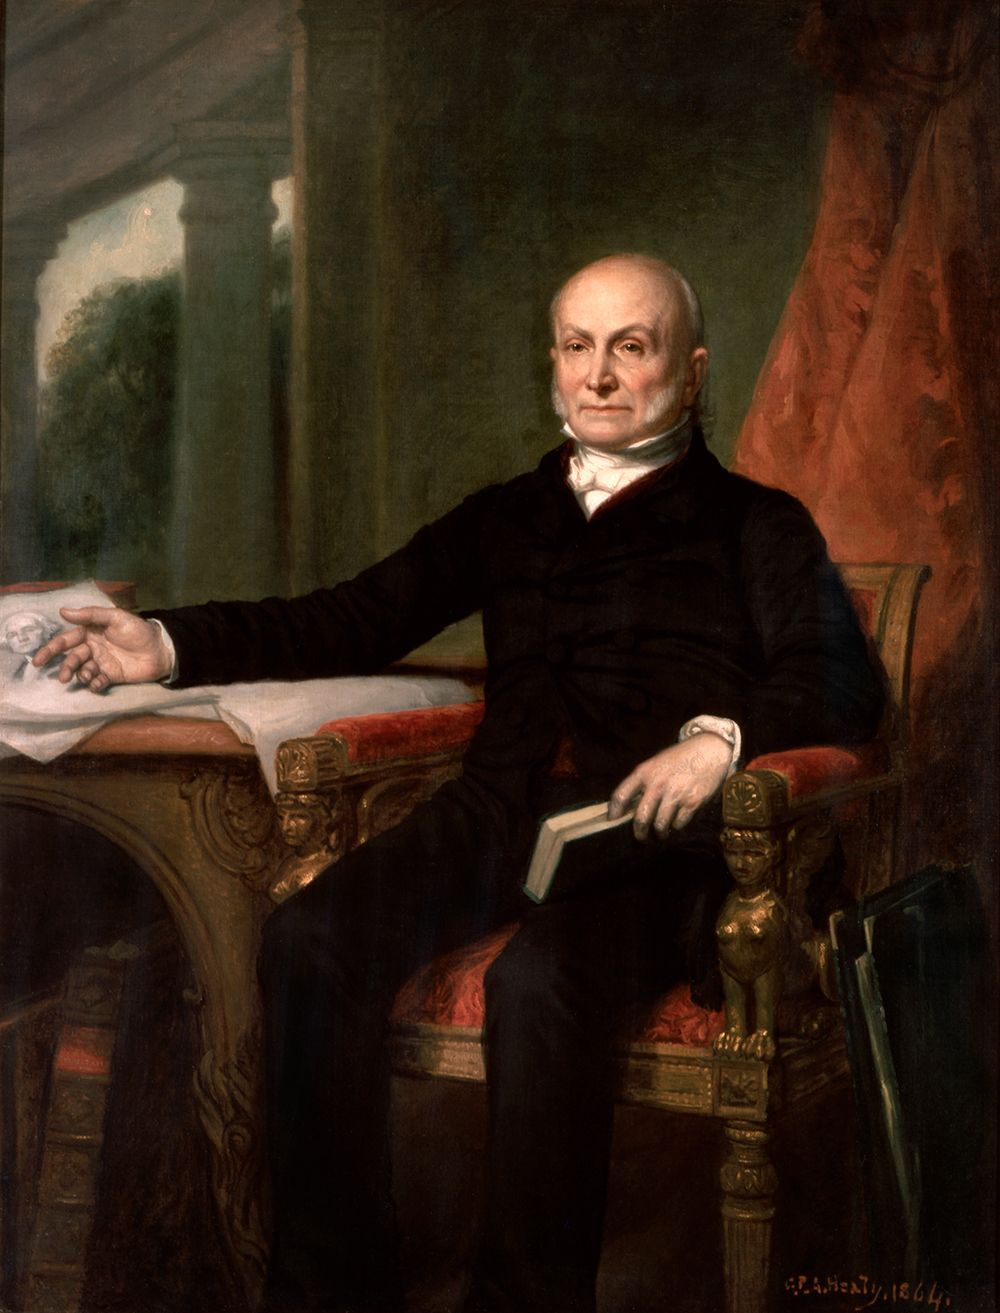 john quincy adams son of john and abigail adams served as the john quincy adams son of john and abigail adams served as the sixth president